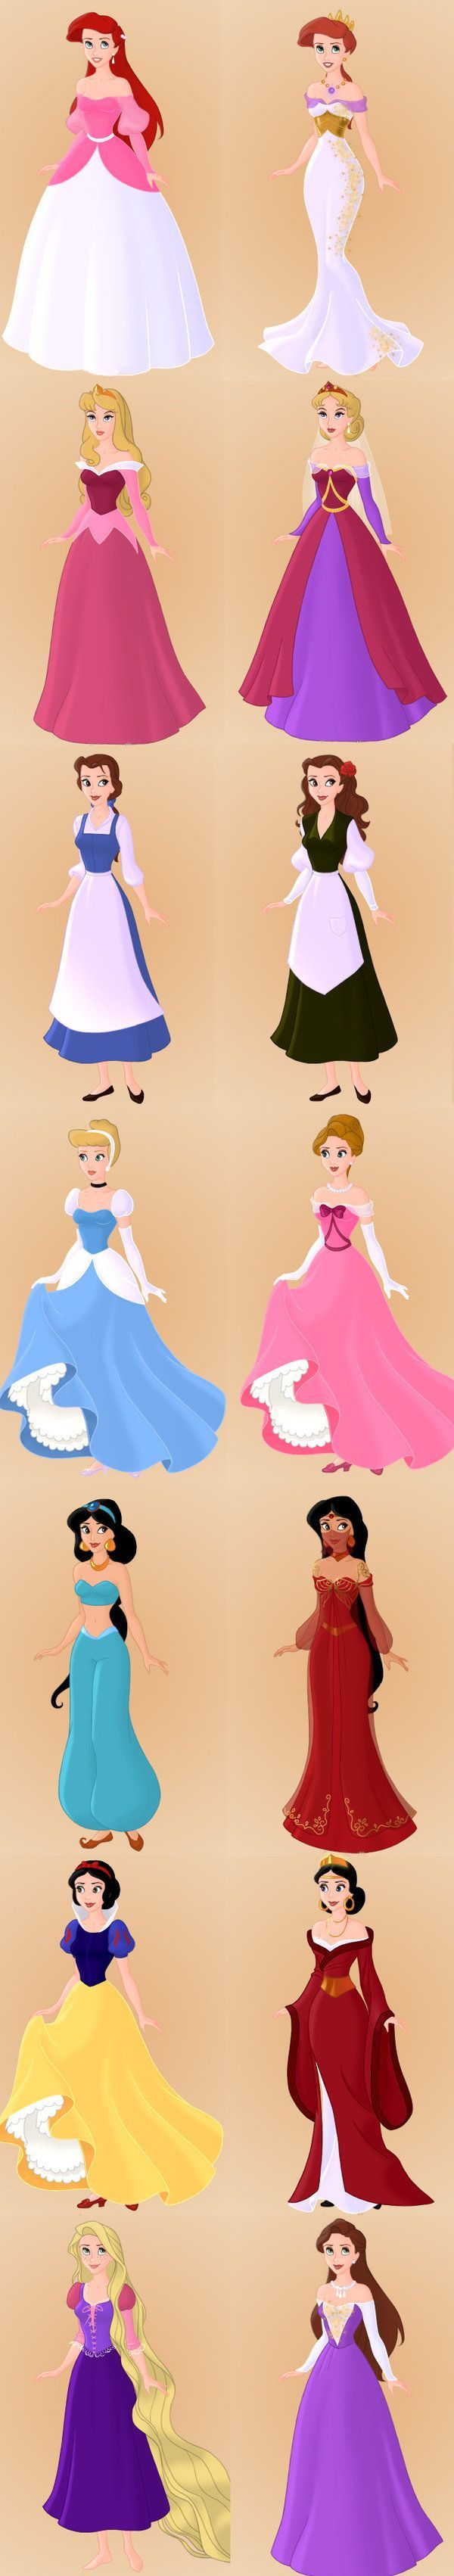 Shop most popular International Disney Princess sale items on Amazon.com by clicking image!